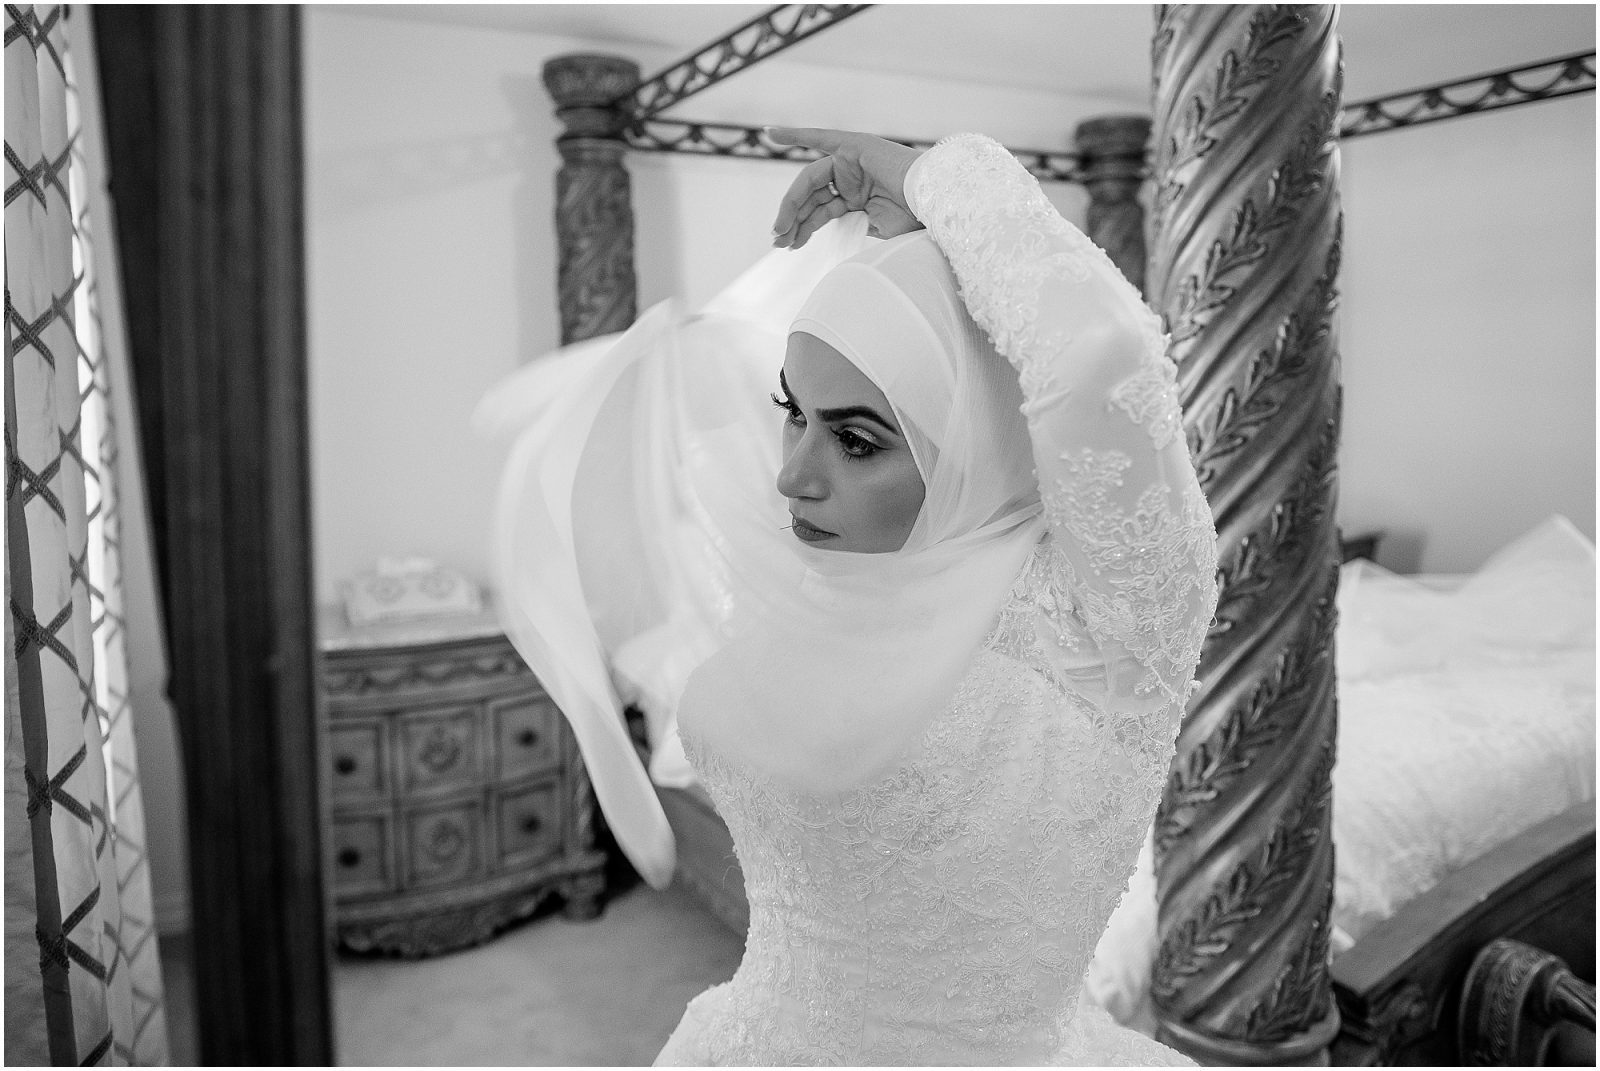 Wedding day hijab style - bride puts on her hijab